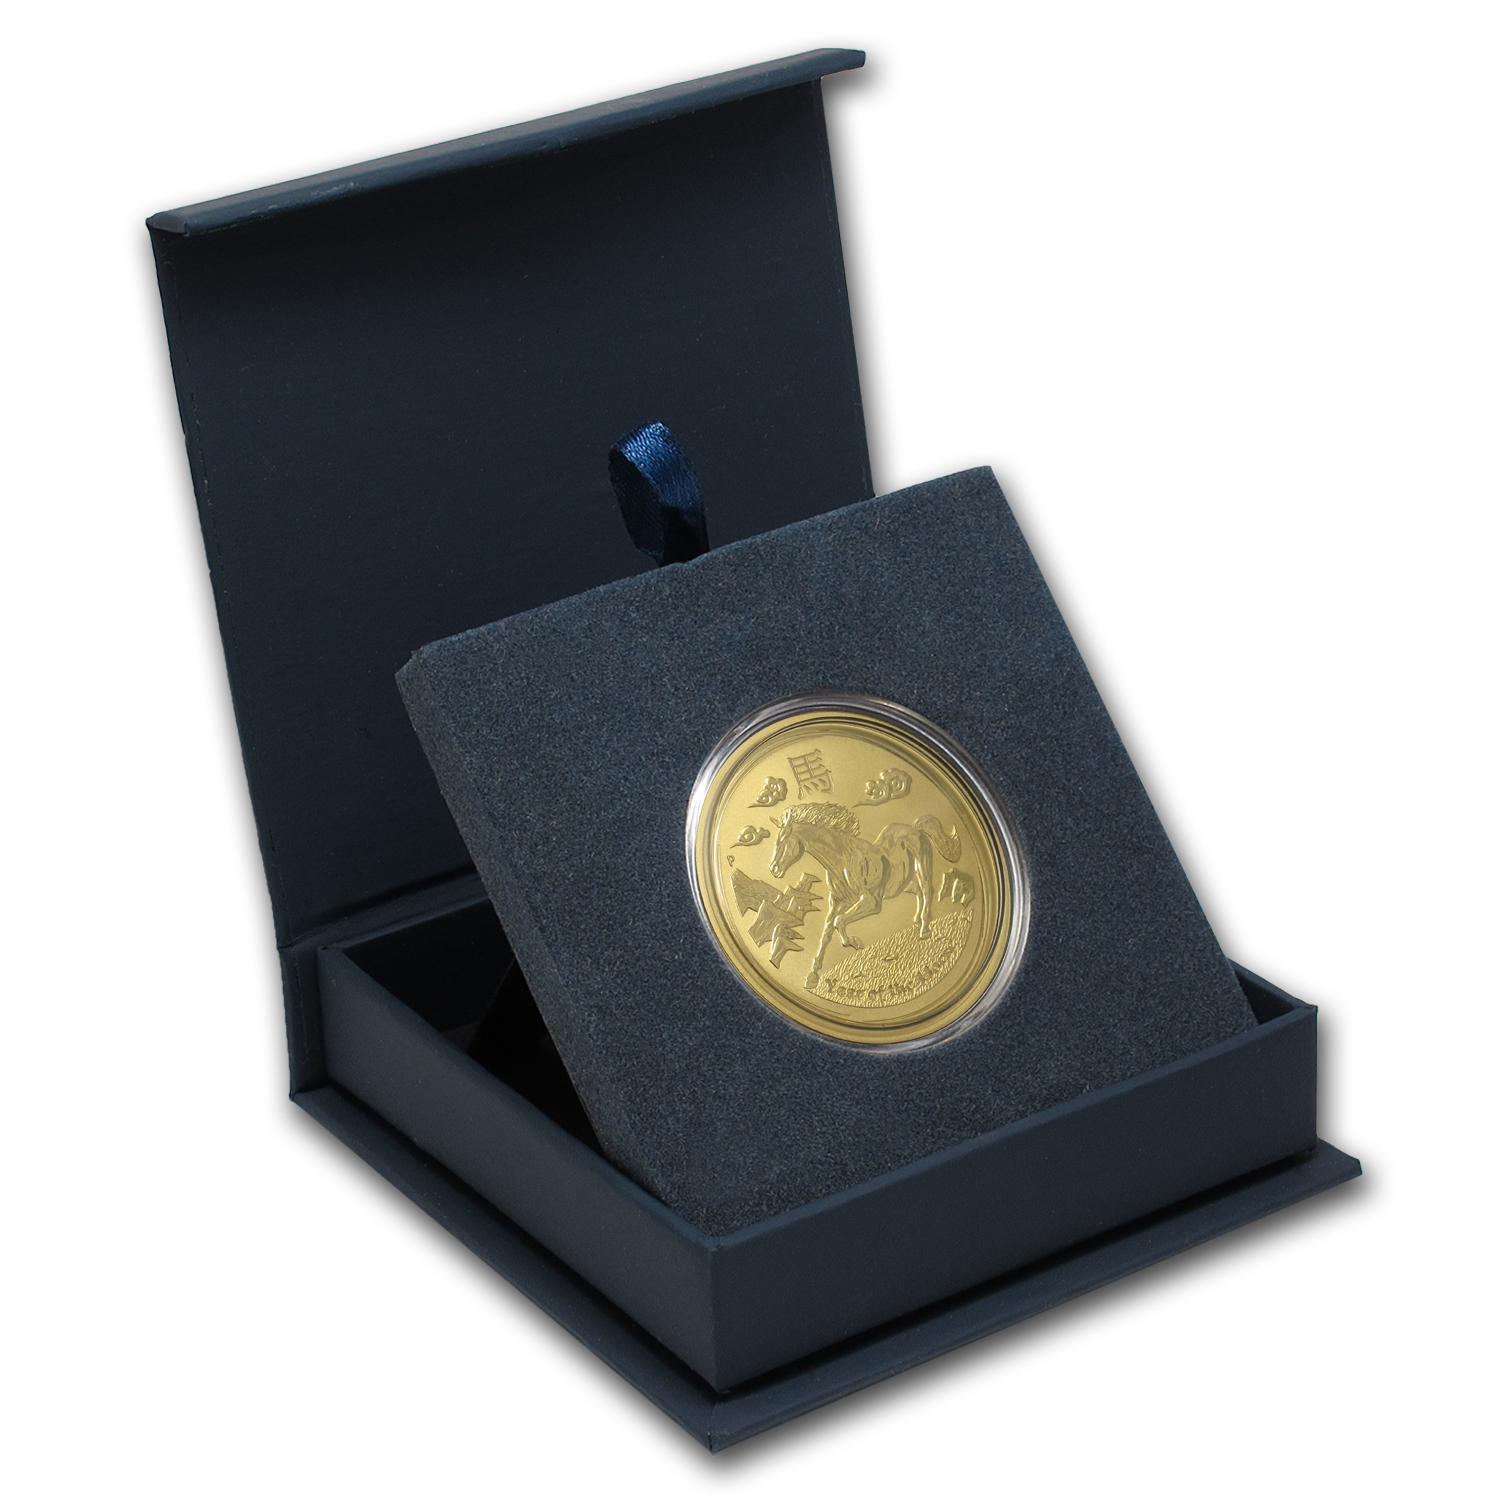 APMEX Gift Box - 1 oz Perth Mint Gold Coin Series 2